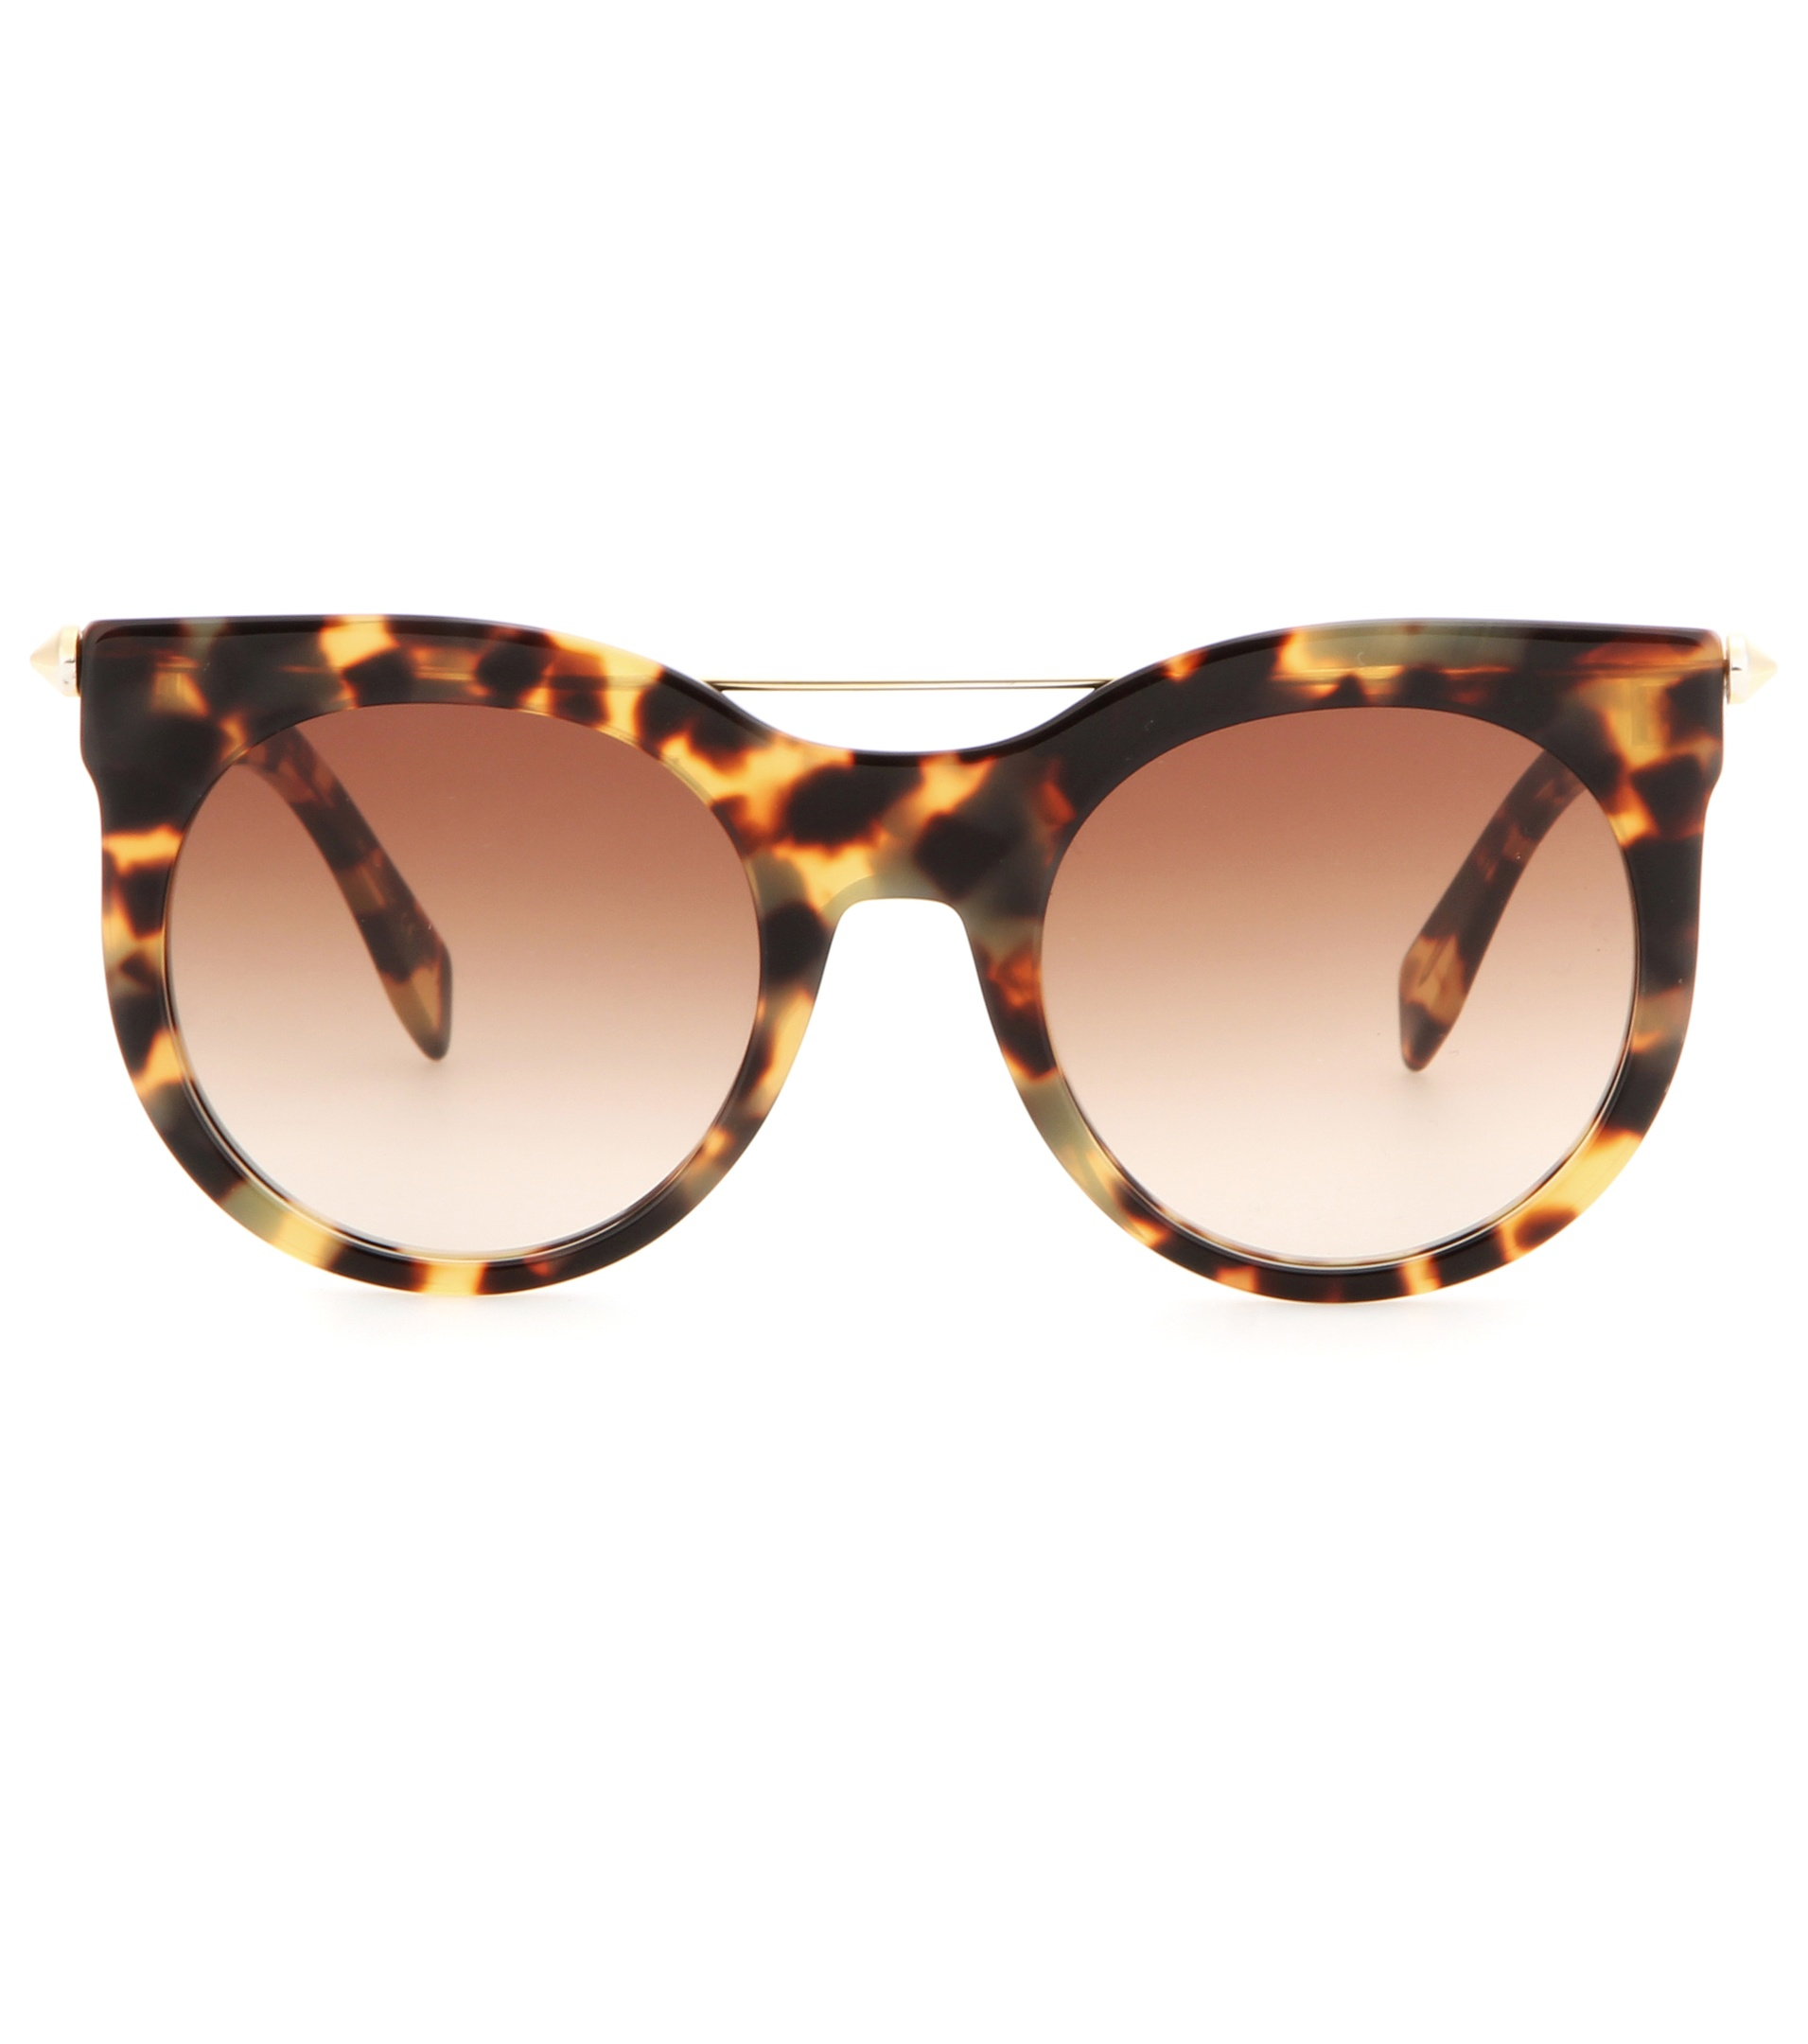 Lyst - Alexander Mcqueen Sunglasses in Brown - Save 58%